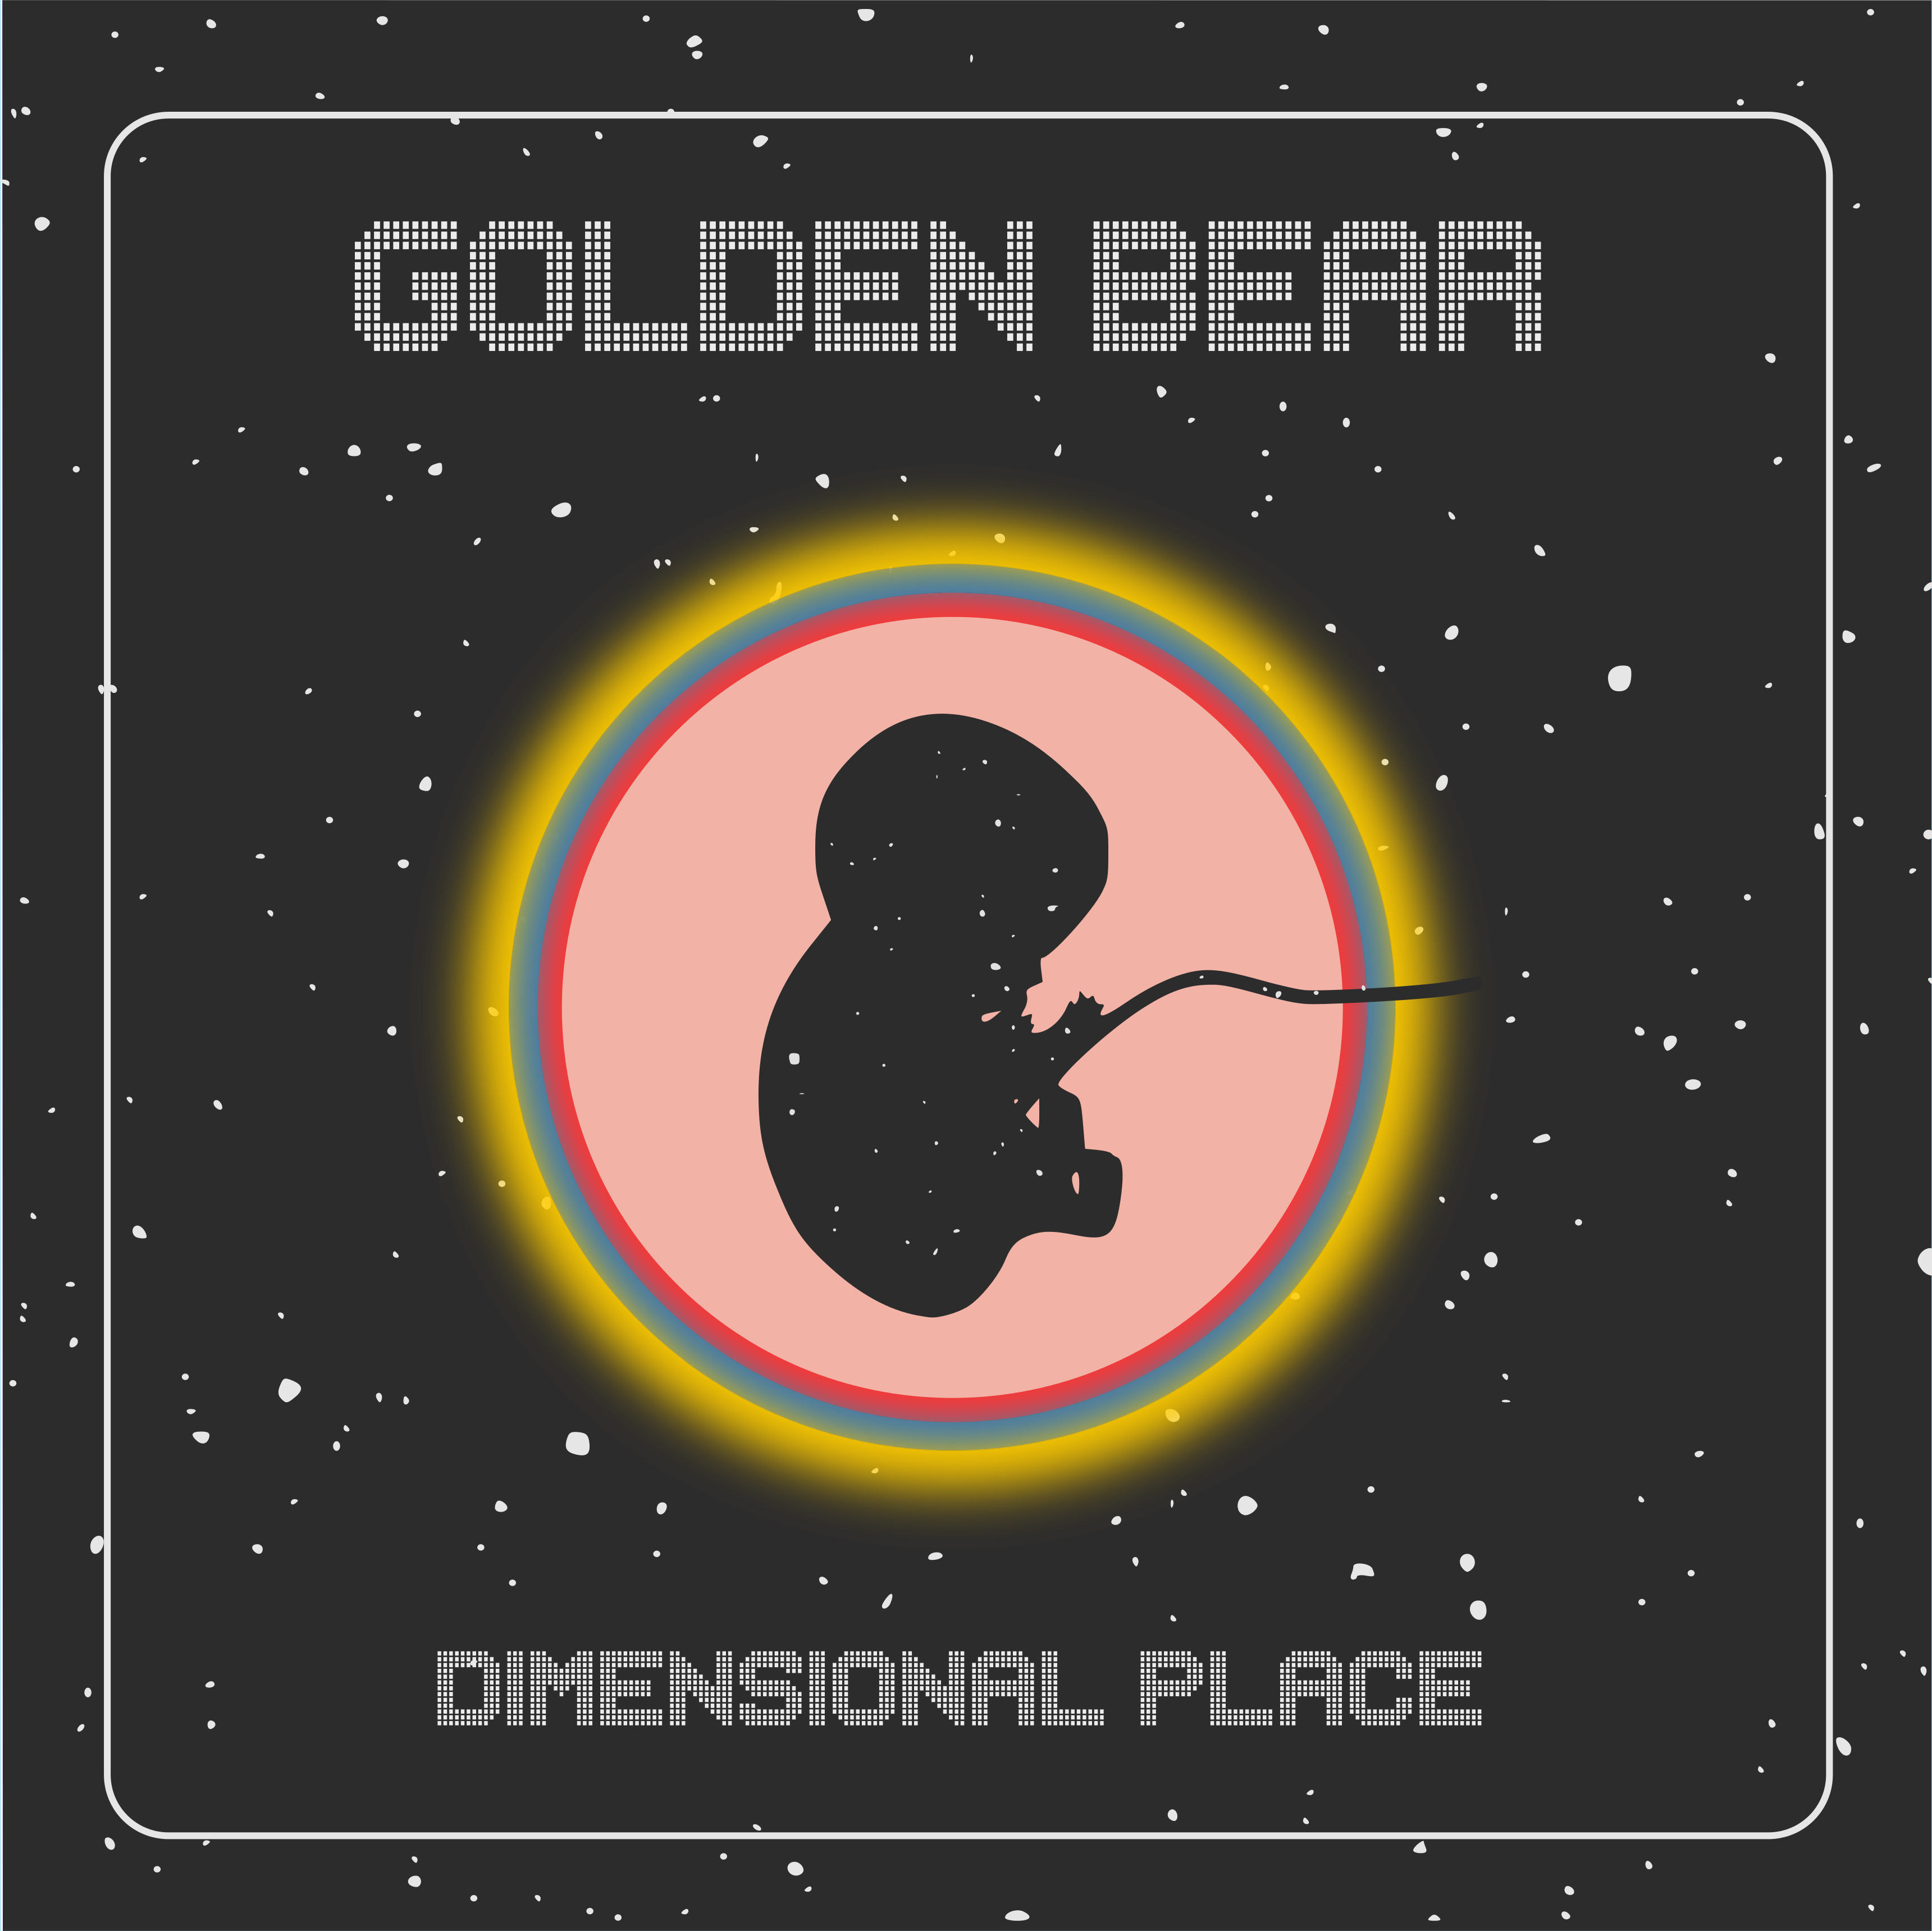 Golden Bear - Dimensional Place